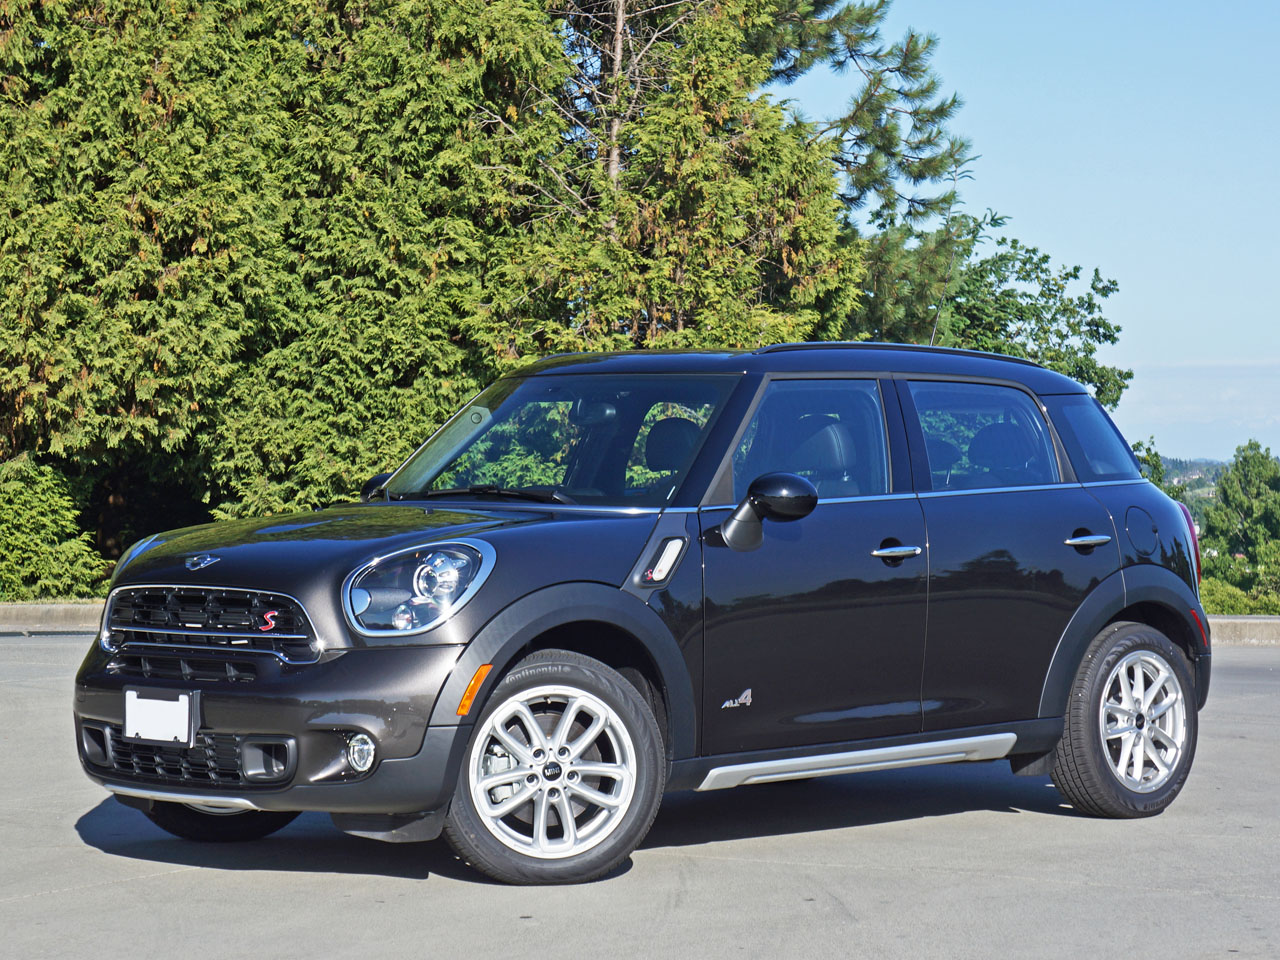 2015 mini cooper s countryman all4 road test review. Black Bedroom Furniture Sets. Home Design Ideas